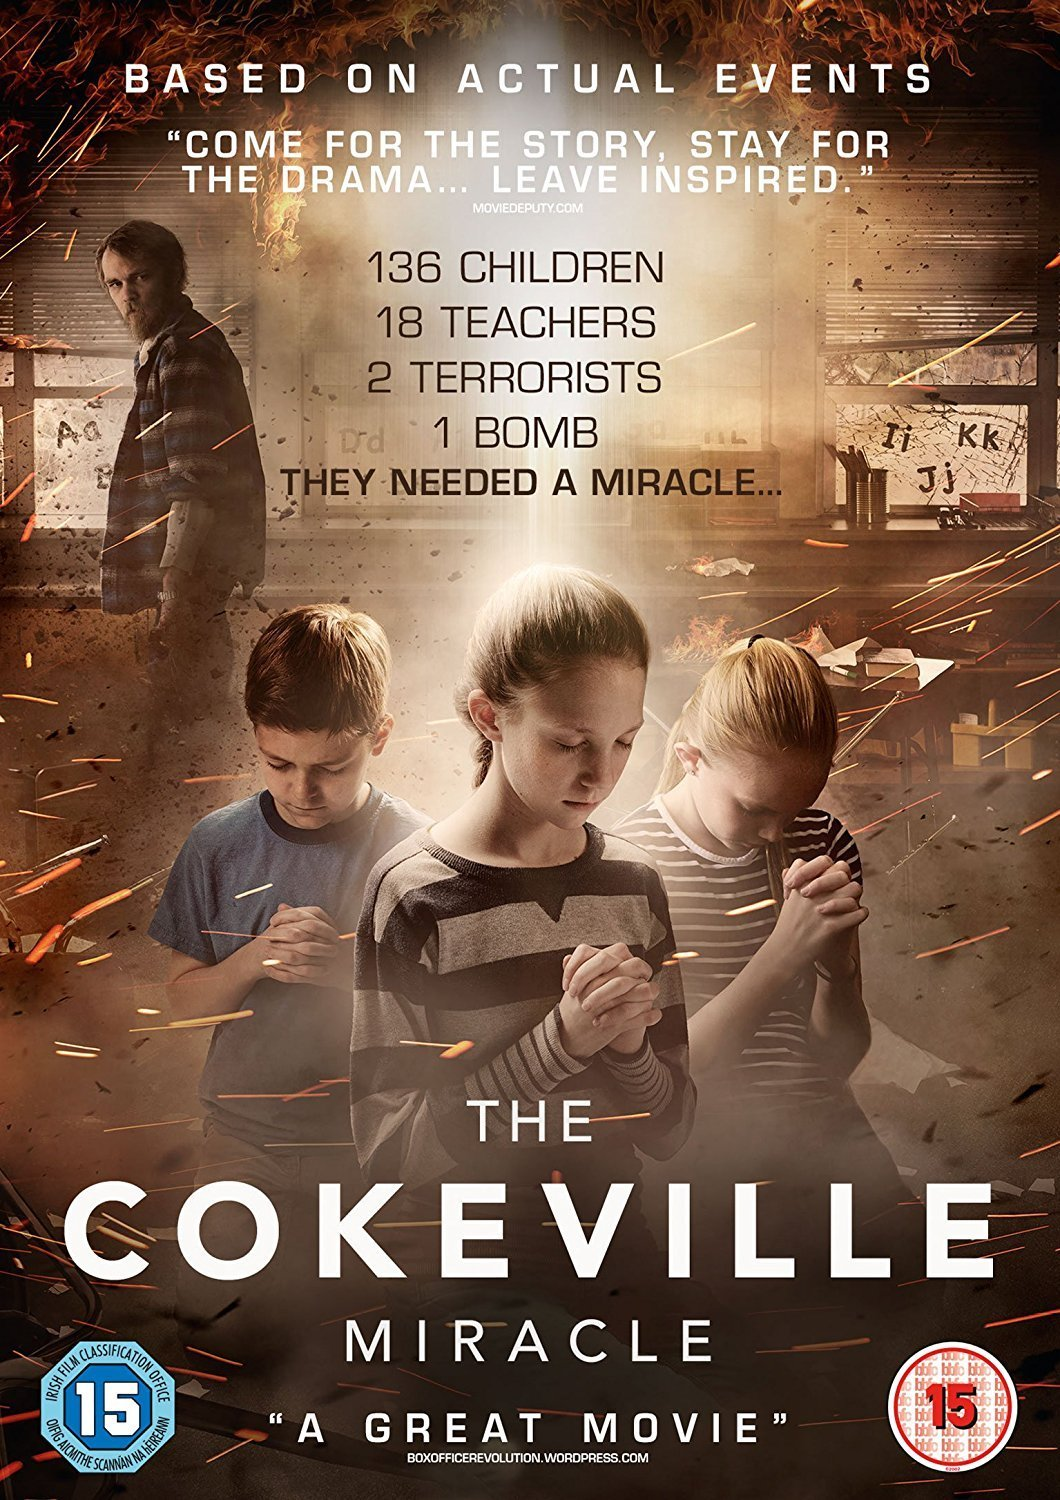 The Cokeville Miracle [DVD]